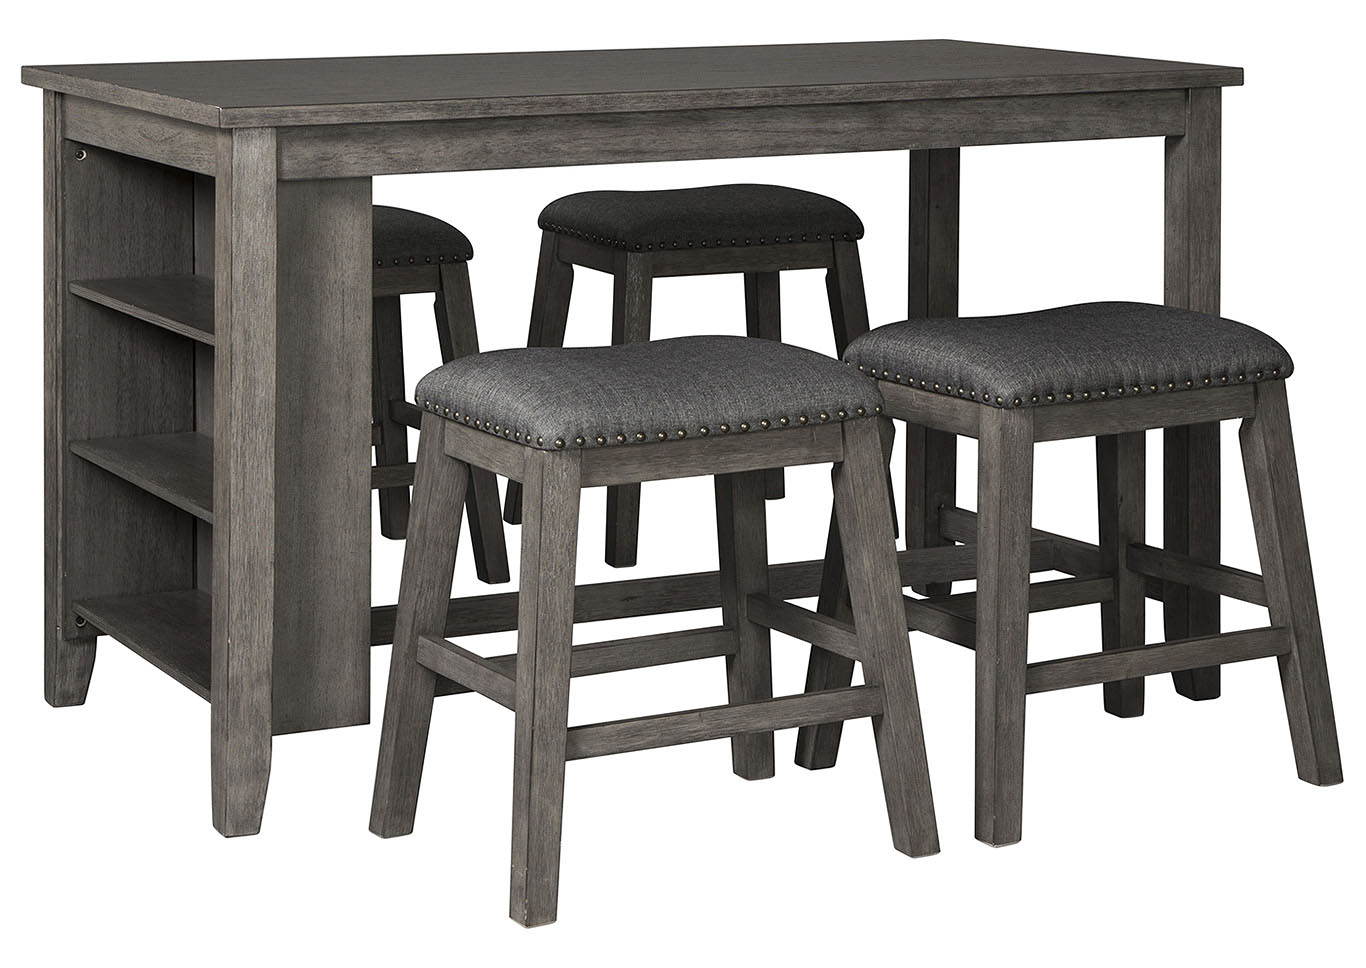 Caitbrook Dark Gray Dining Set w/4 Stools,Signature Design By Ashley